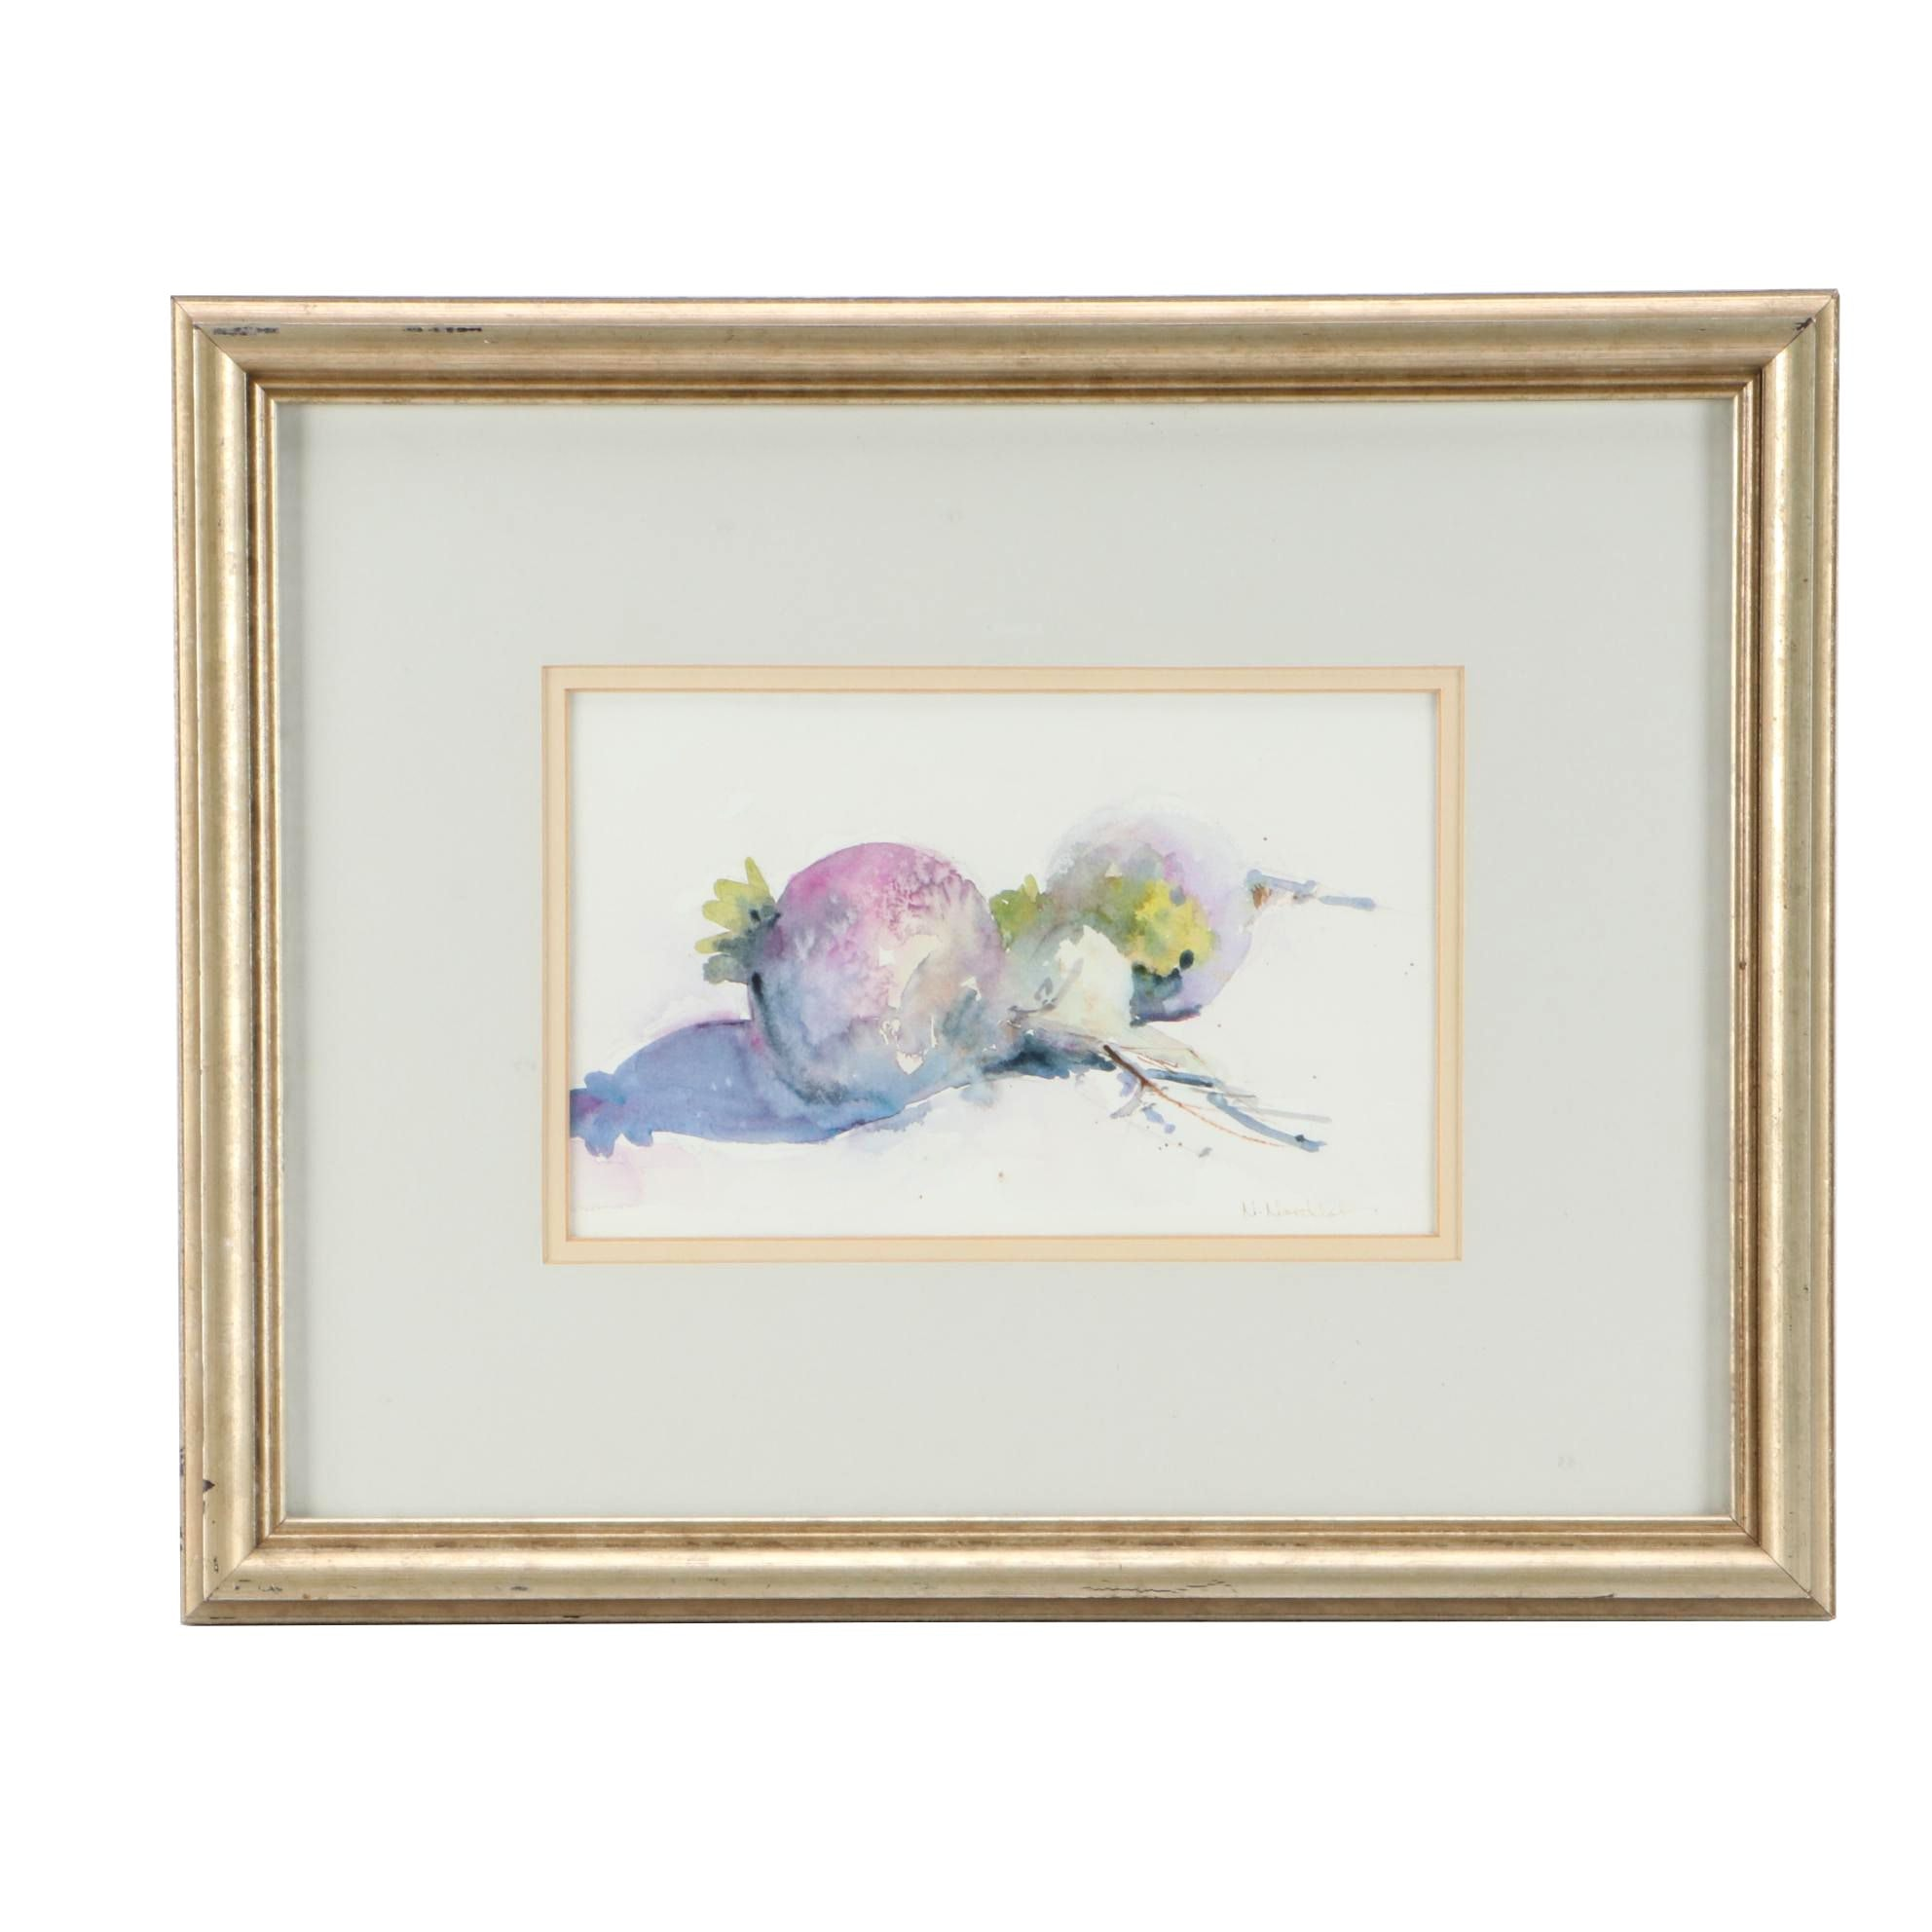 "Nancy Nordloh Neville Watercolor Painting ""From George's Garden"""